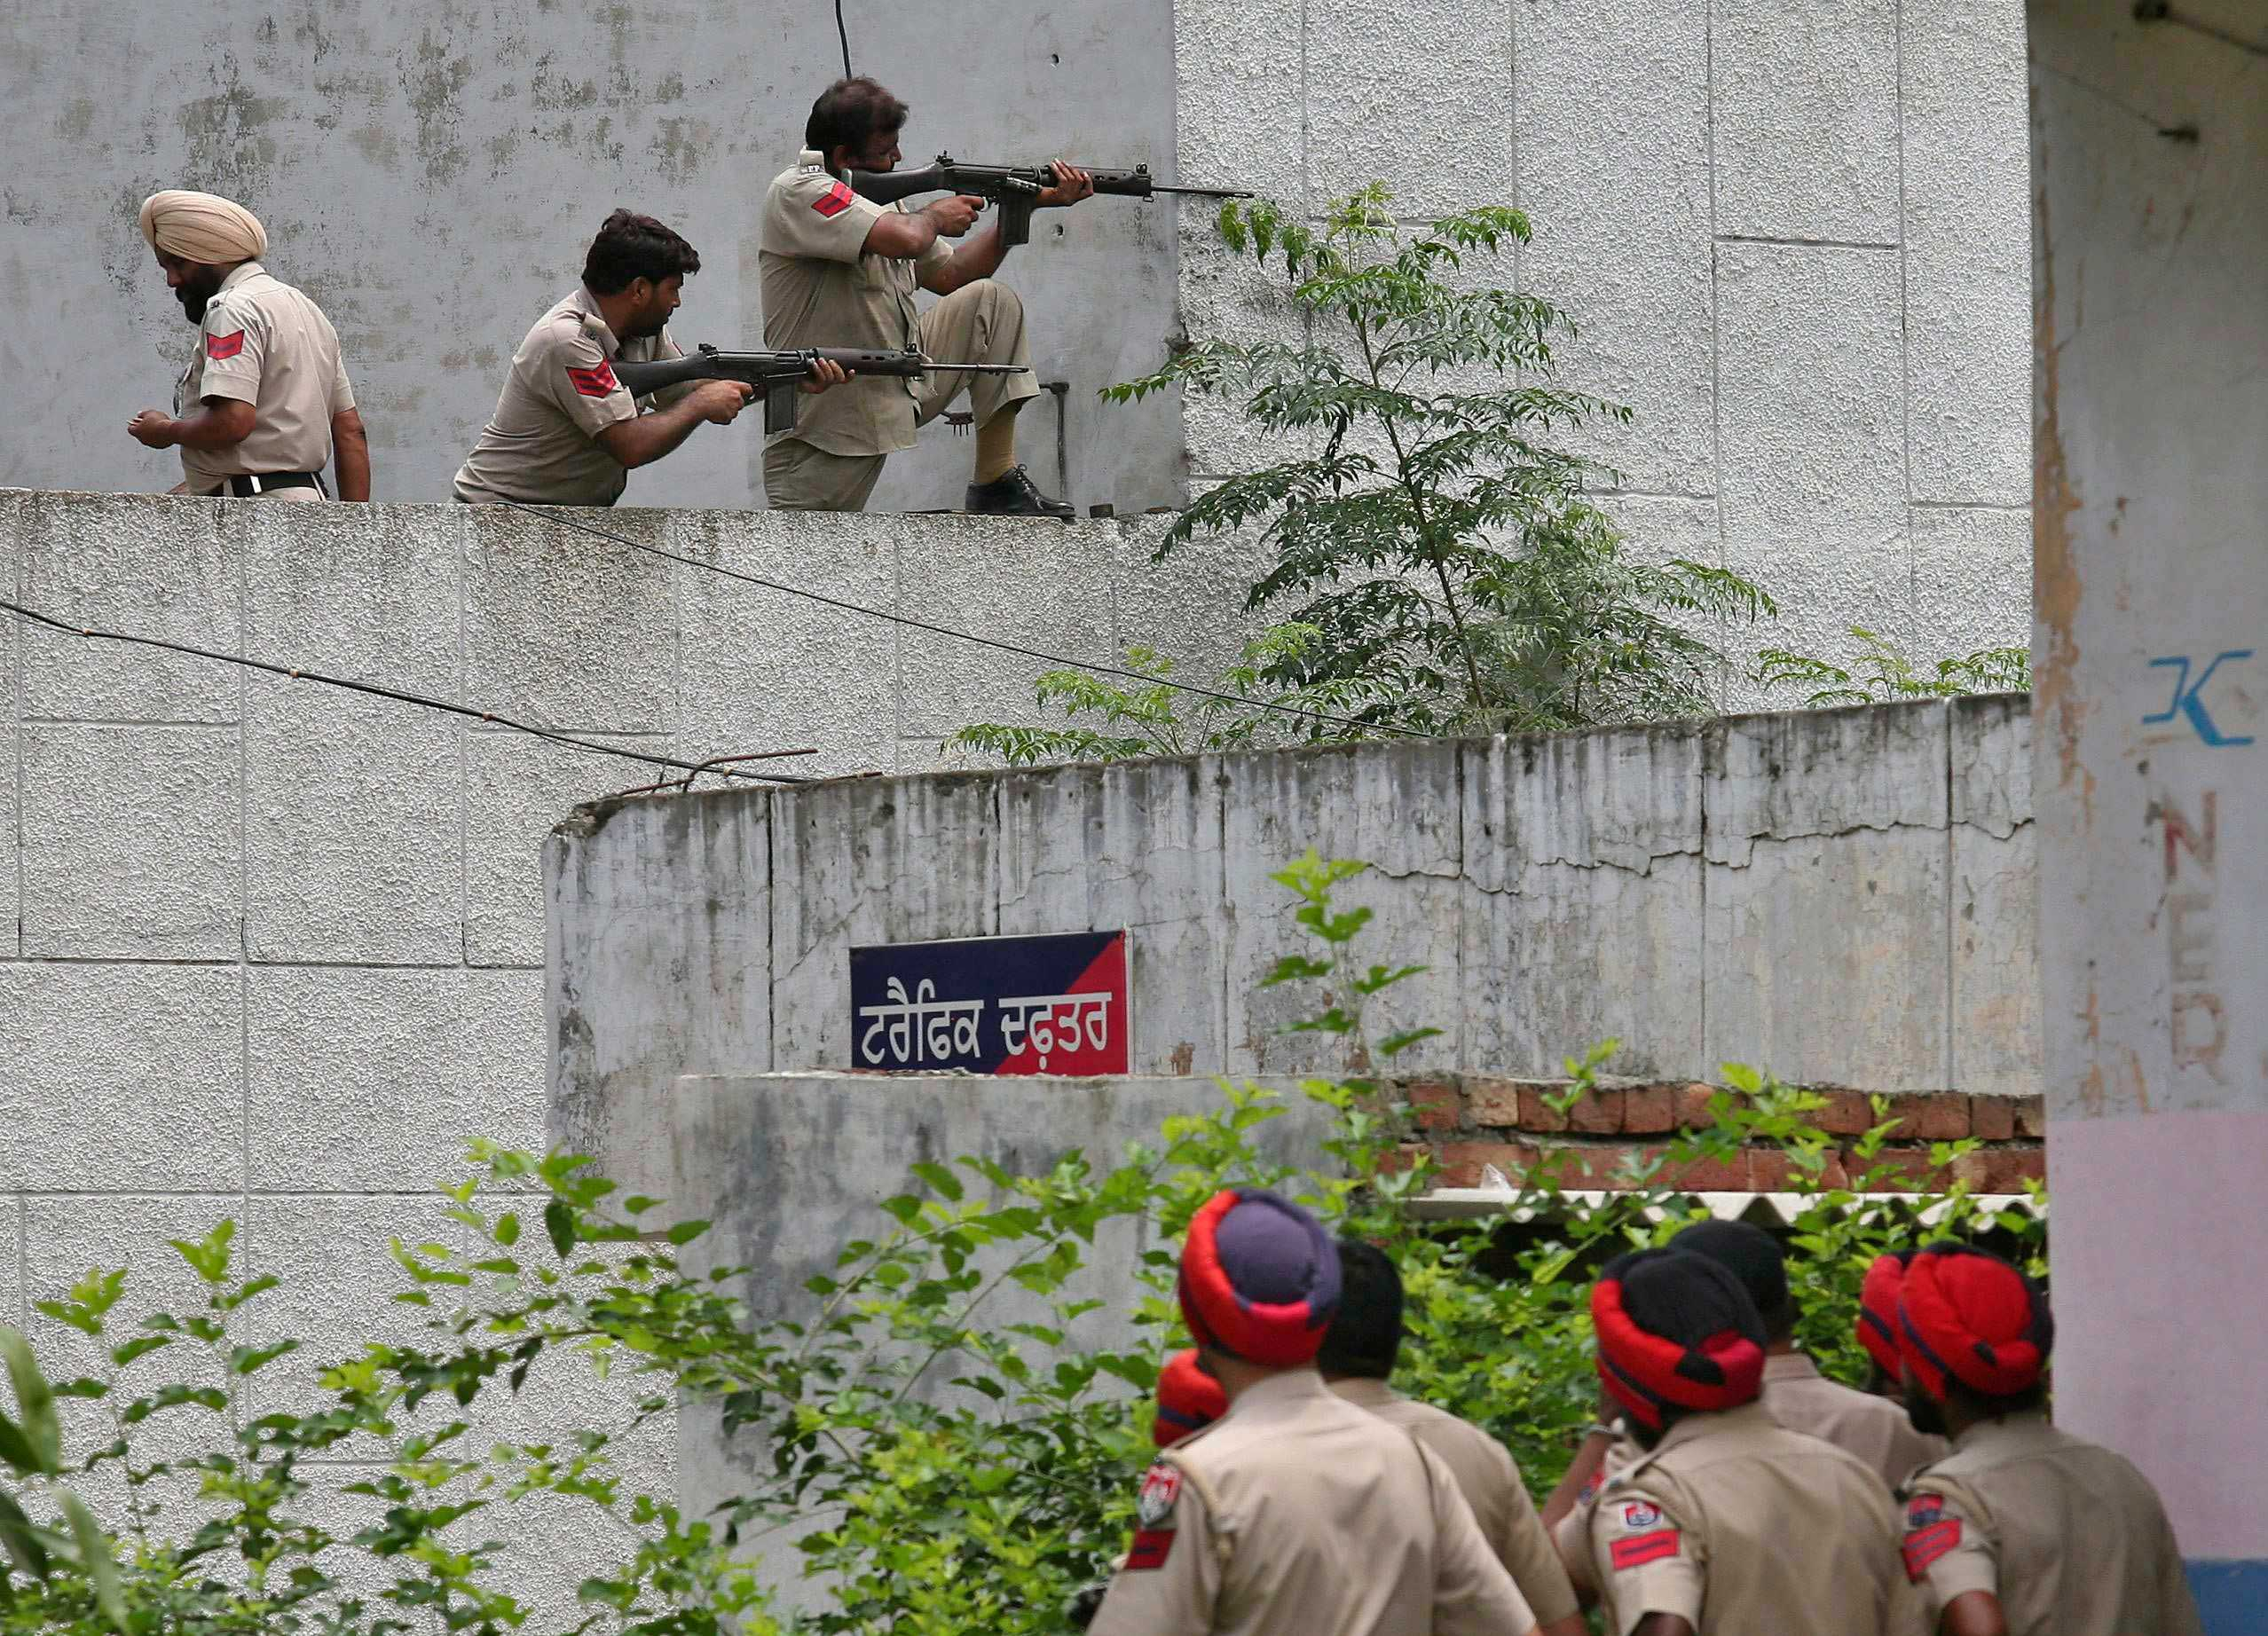 Indian policemen take their positions as their colleagues watch next to a police station during a gunfight at Dinanagar town in Gurdaspur district of Punjab, India on July 27, 2015.